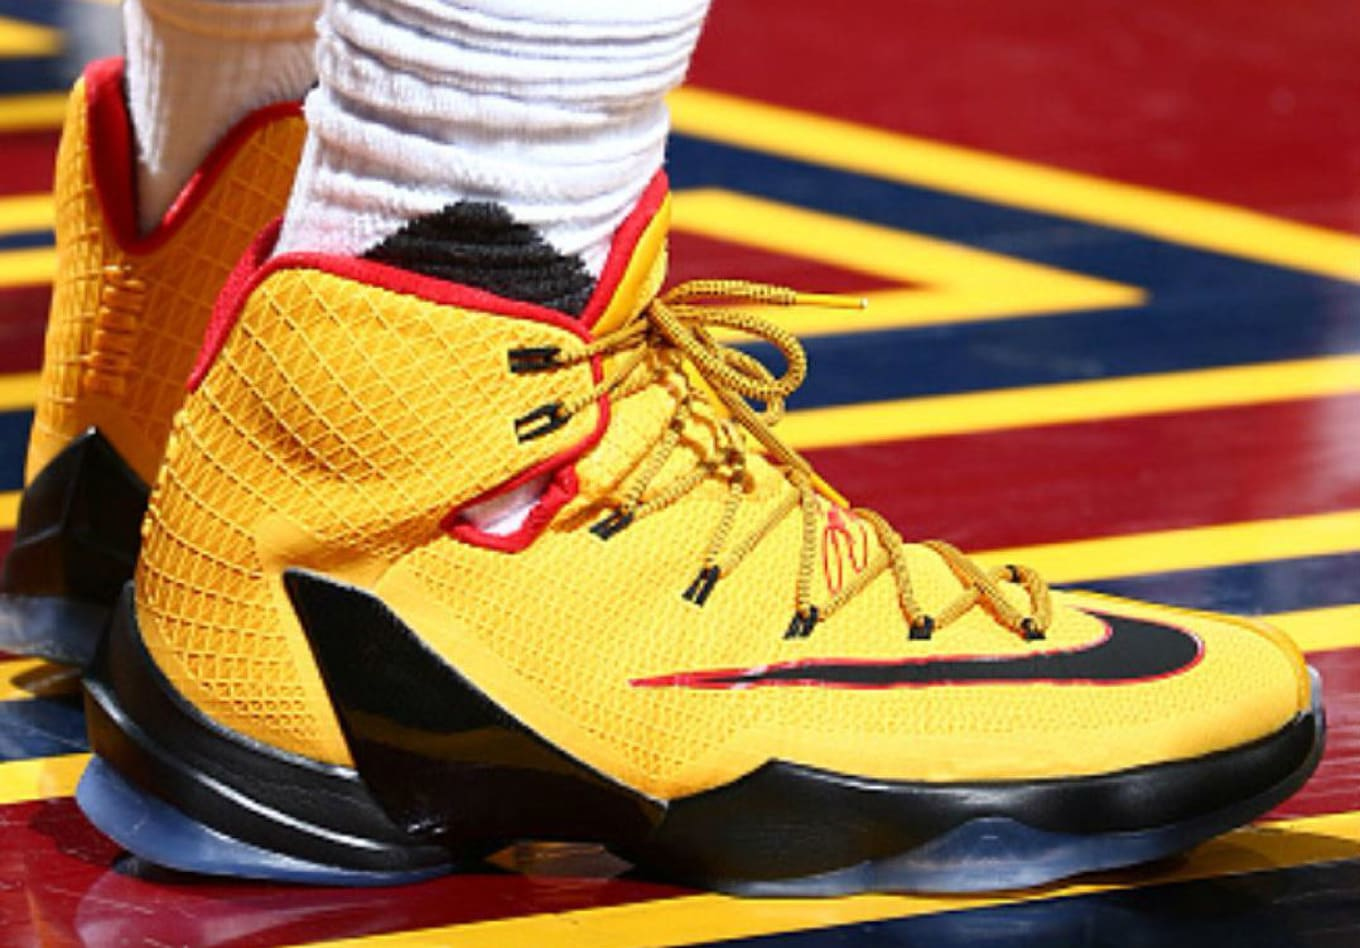 451f2ee49efe LeBron James Wearing a Yellow Black-Red Nike LeBron 13 Elite PE (1